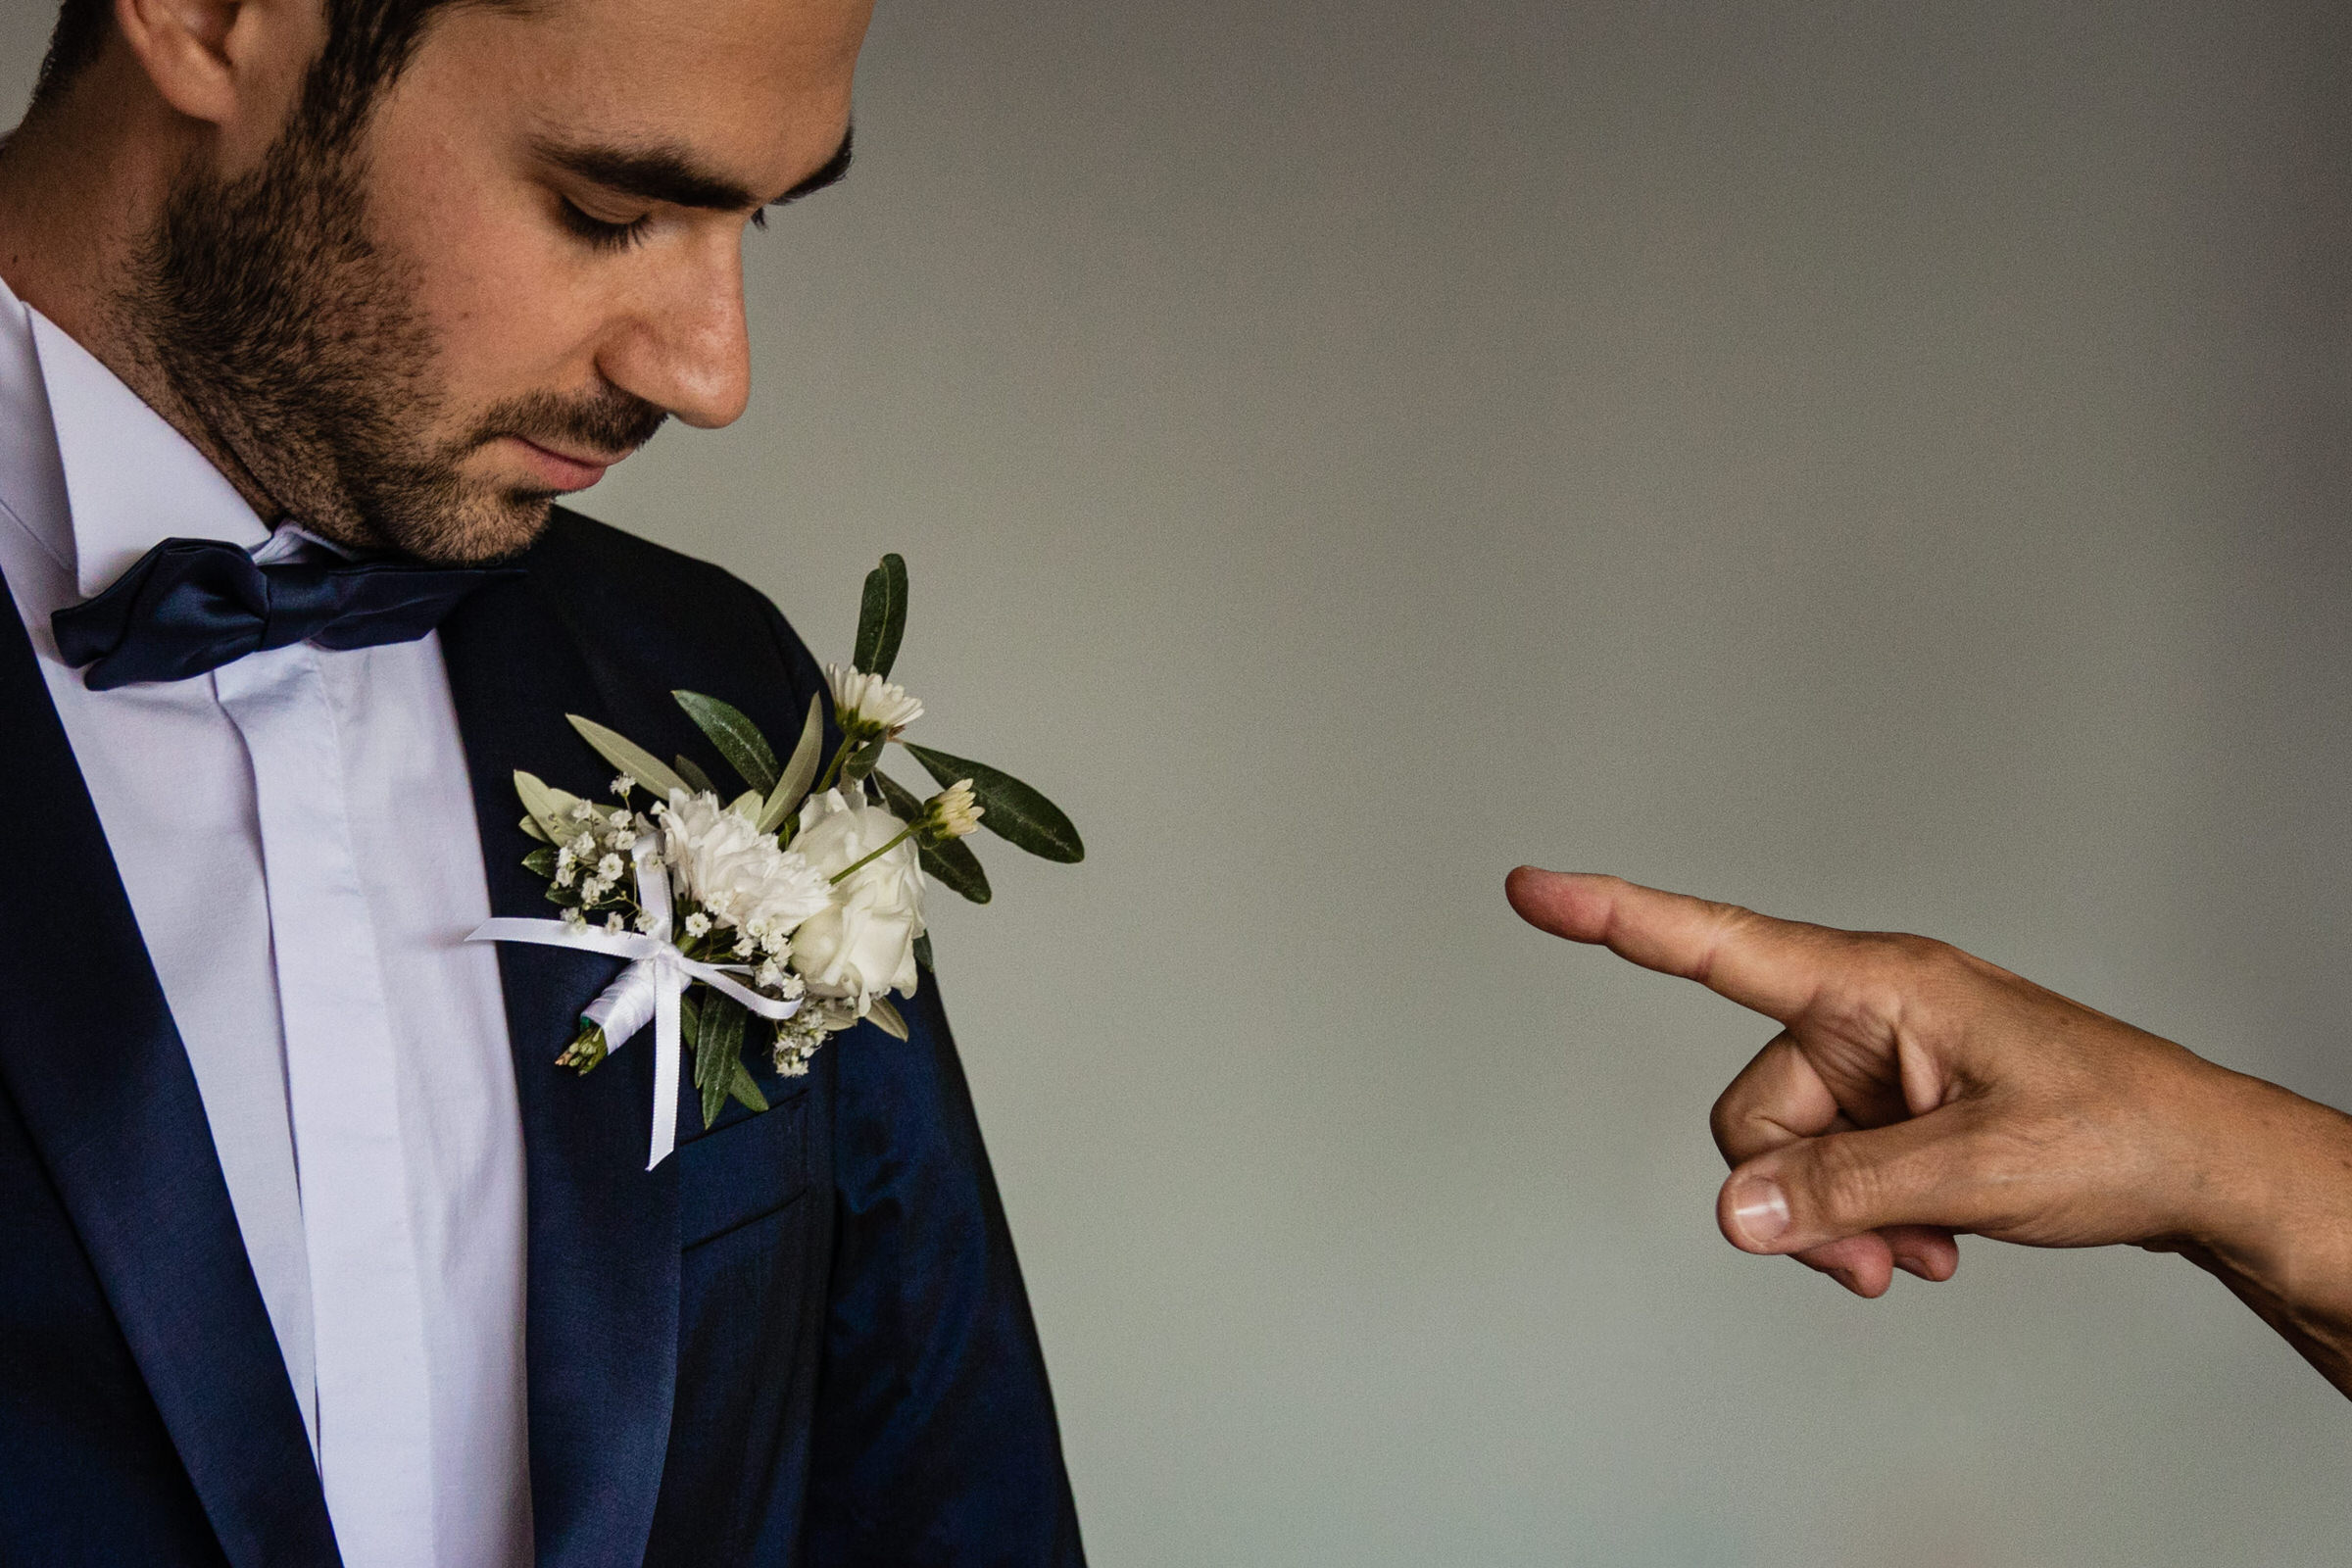 Pointing to the boutonniere - photo by Luca + Marta Gallizio Photography